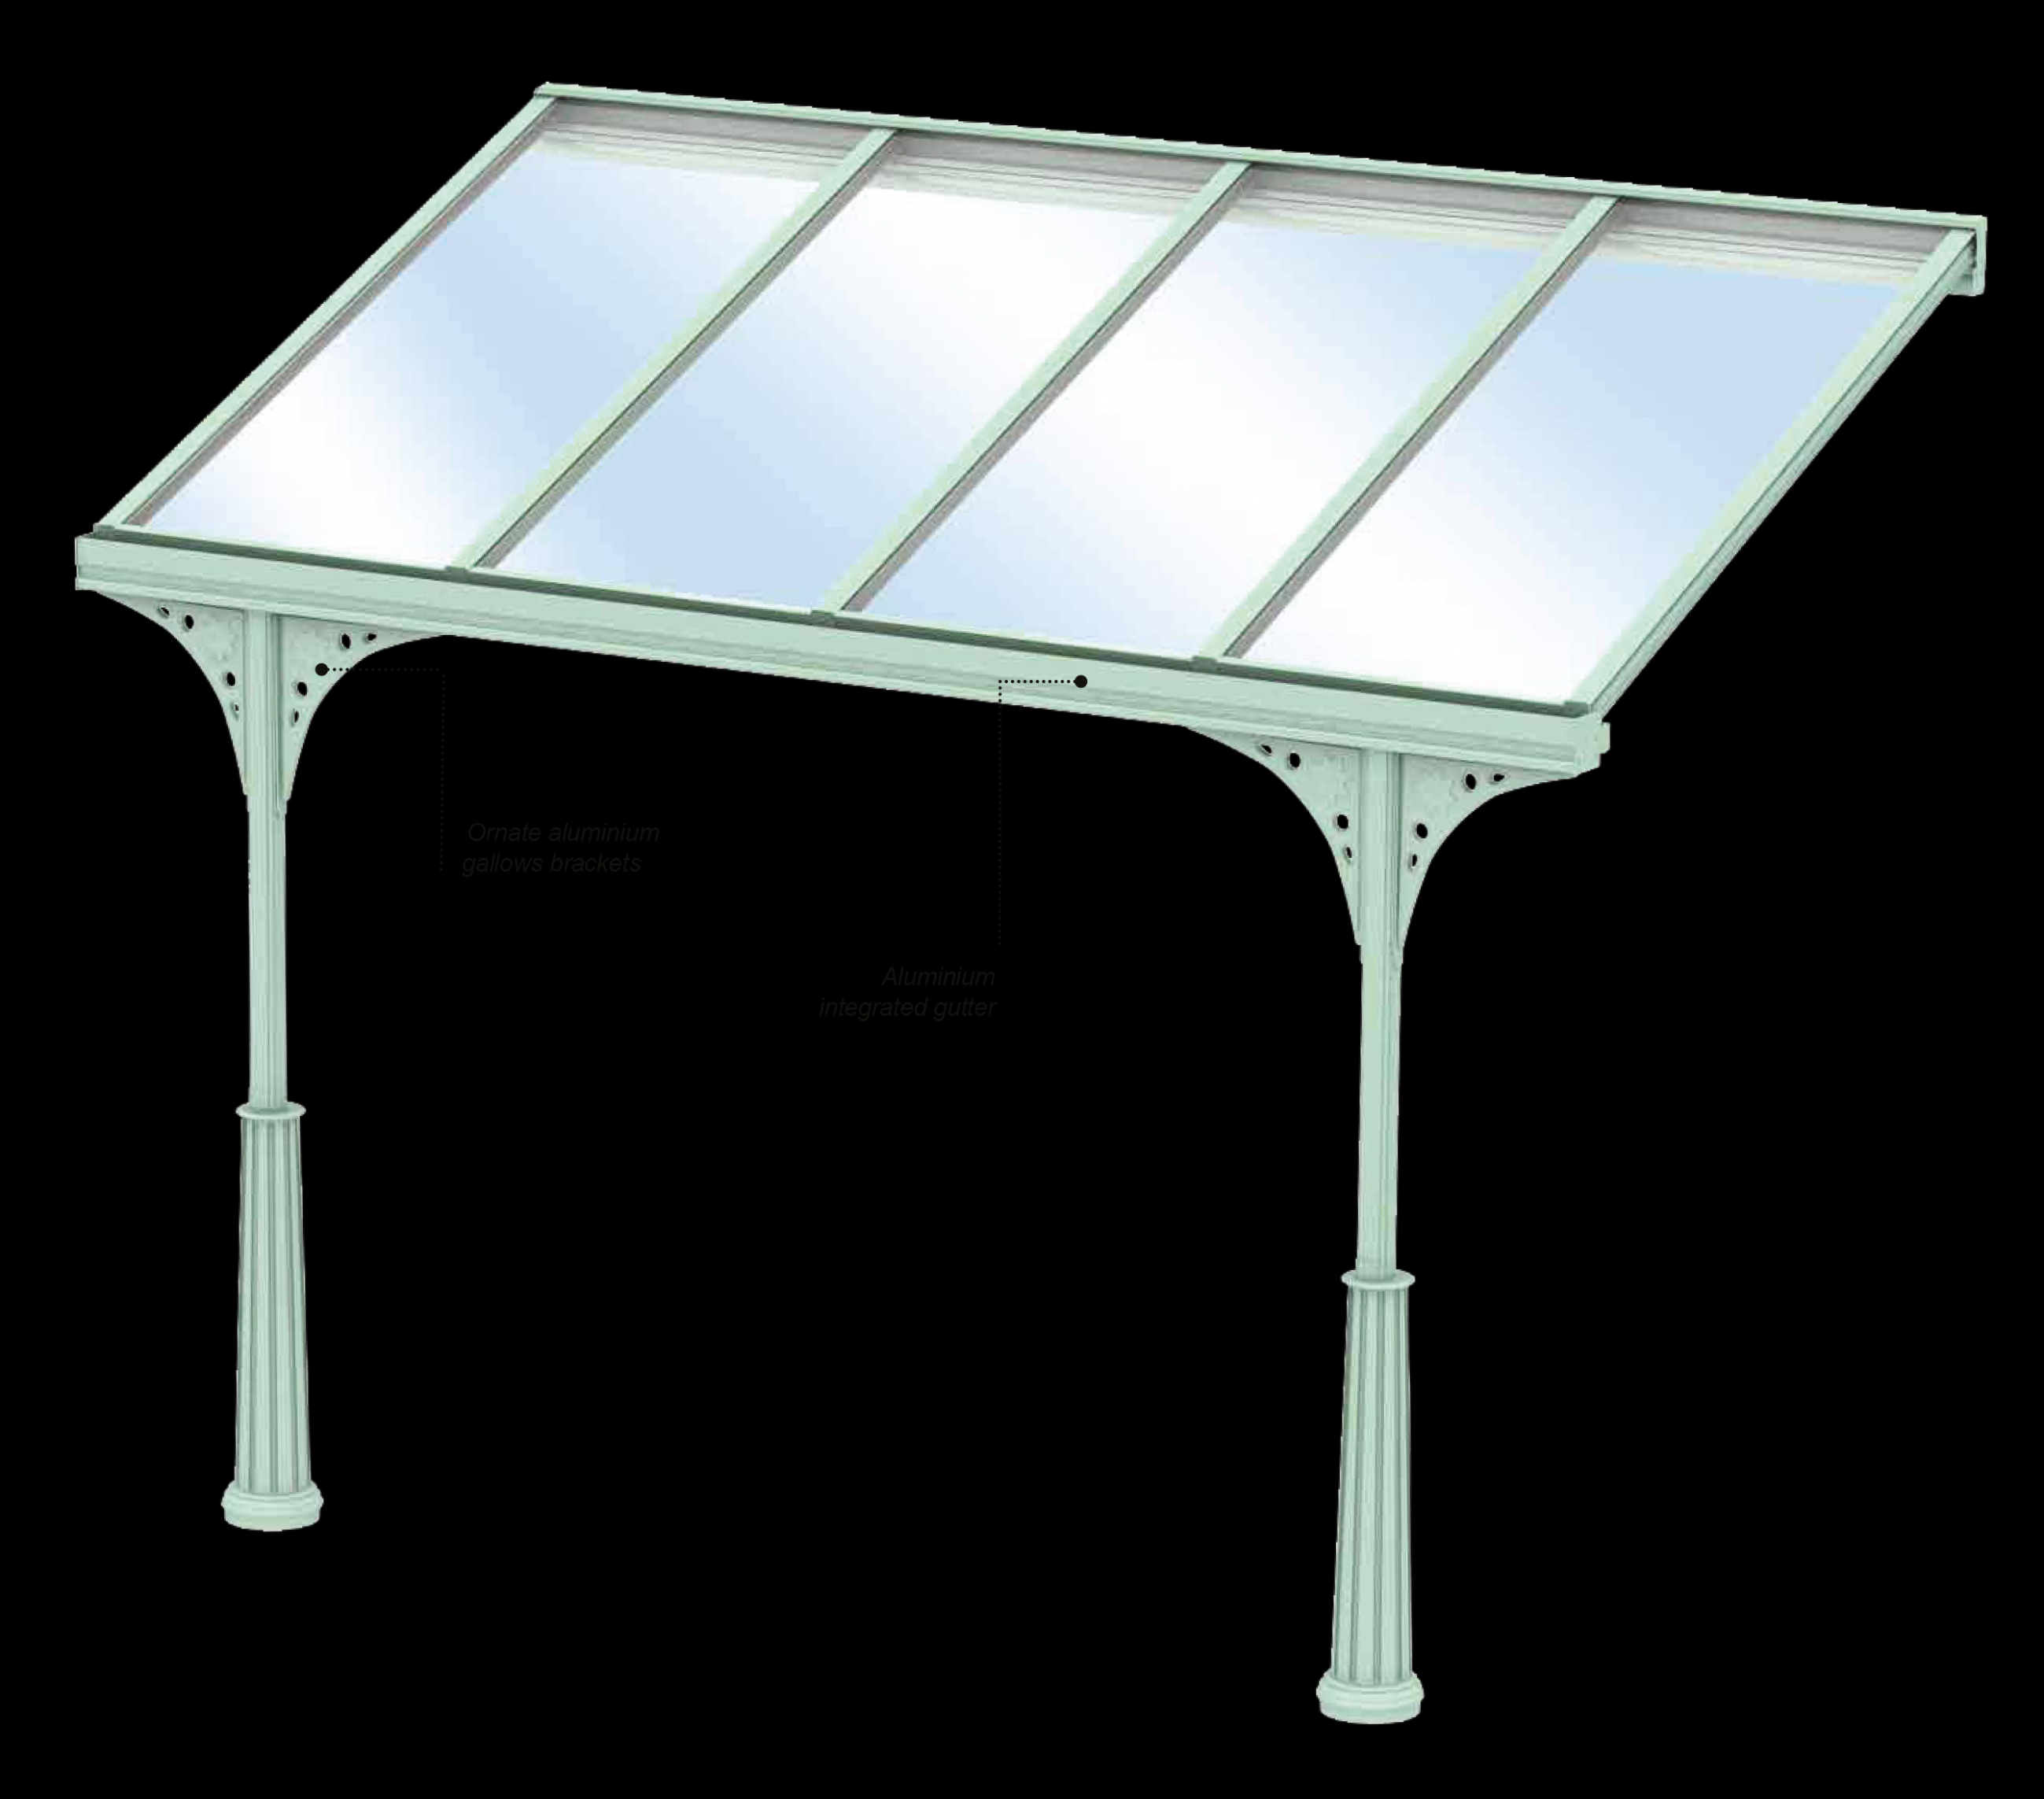 Carport Extra Canopies And Roof Systems Ireland Carport Glass Canopy